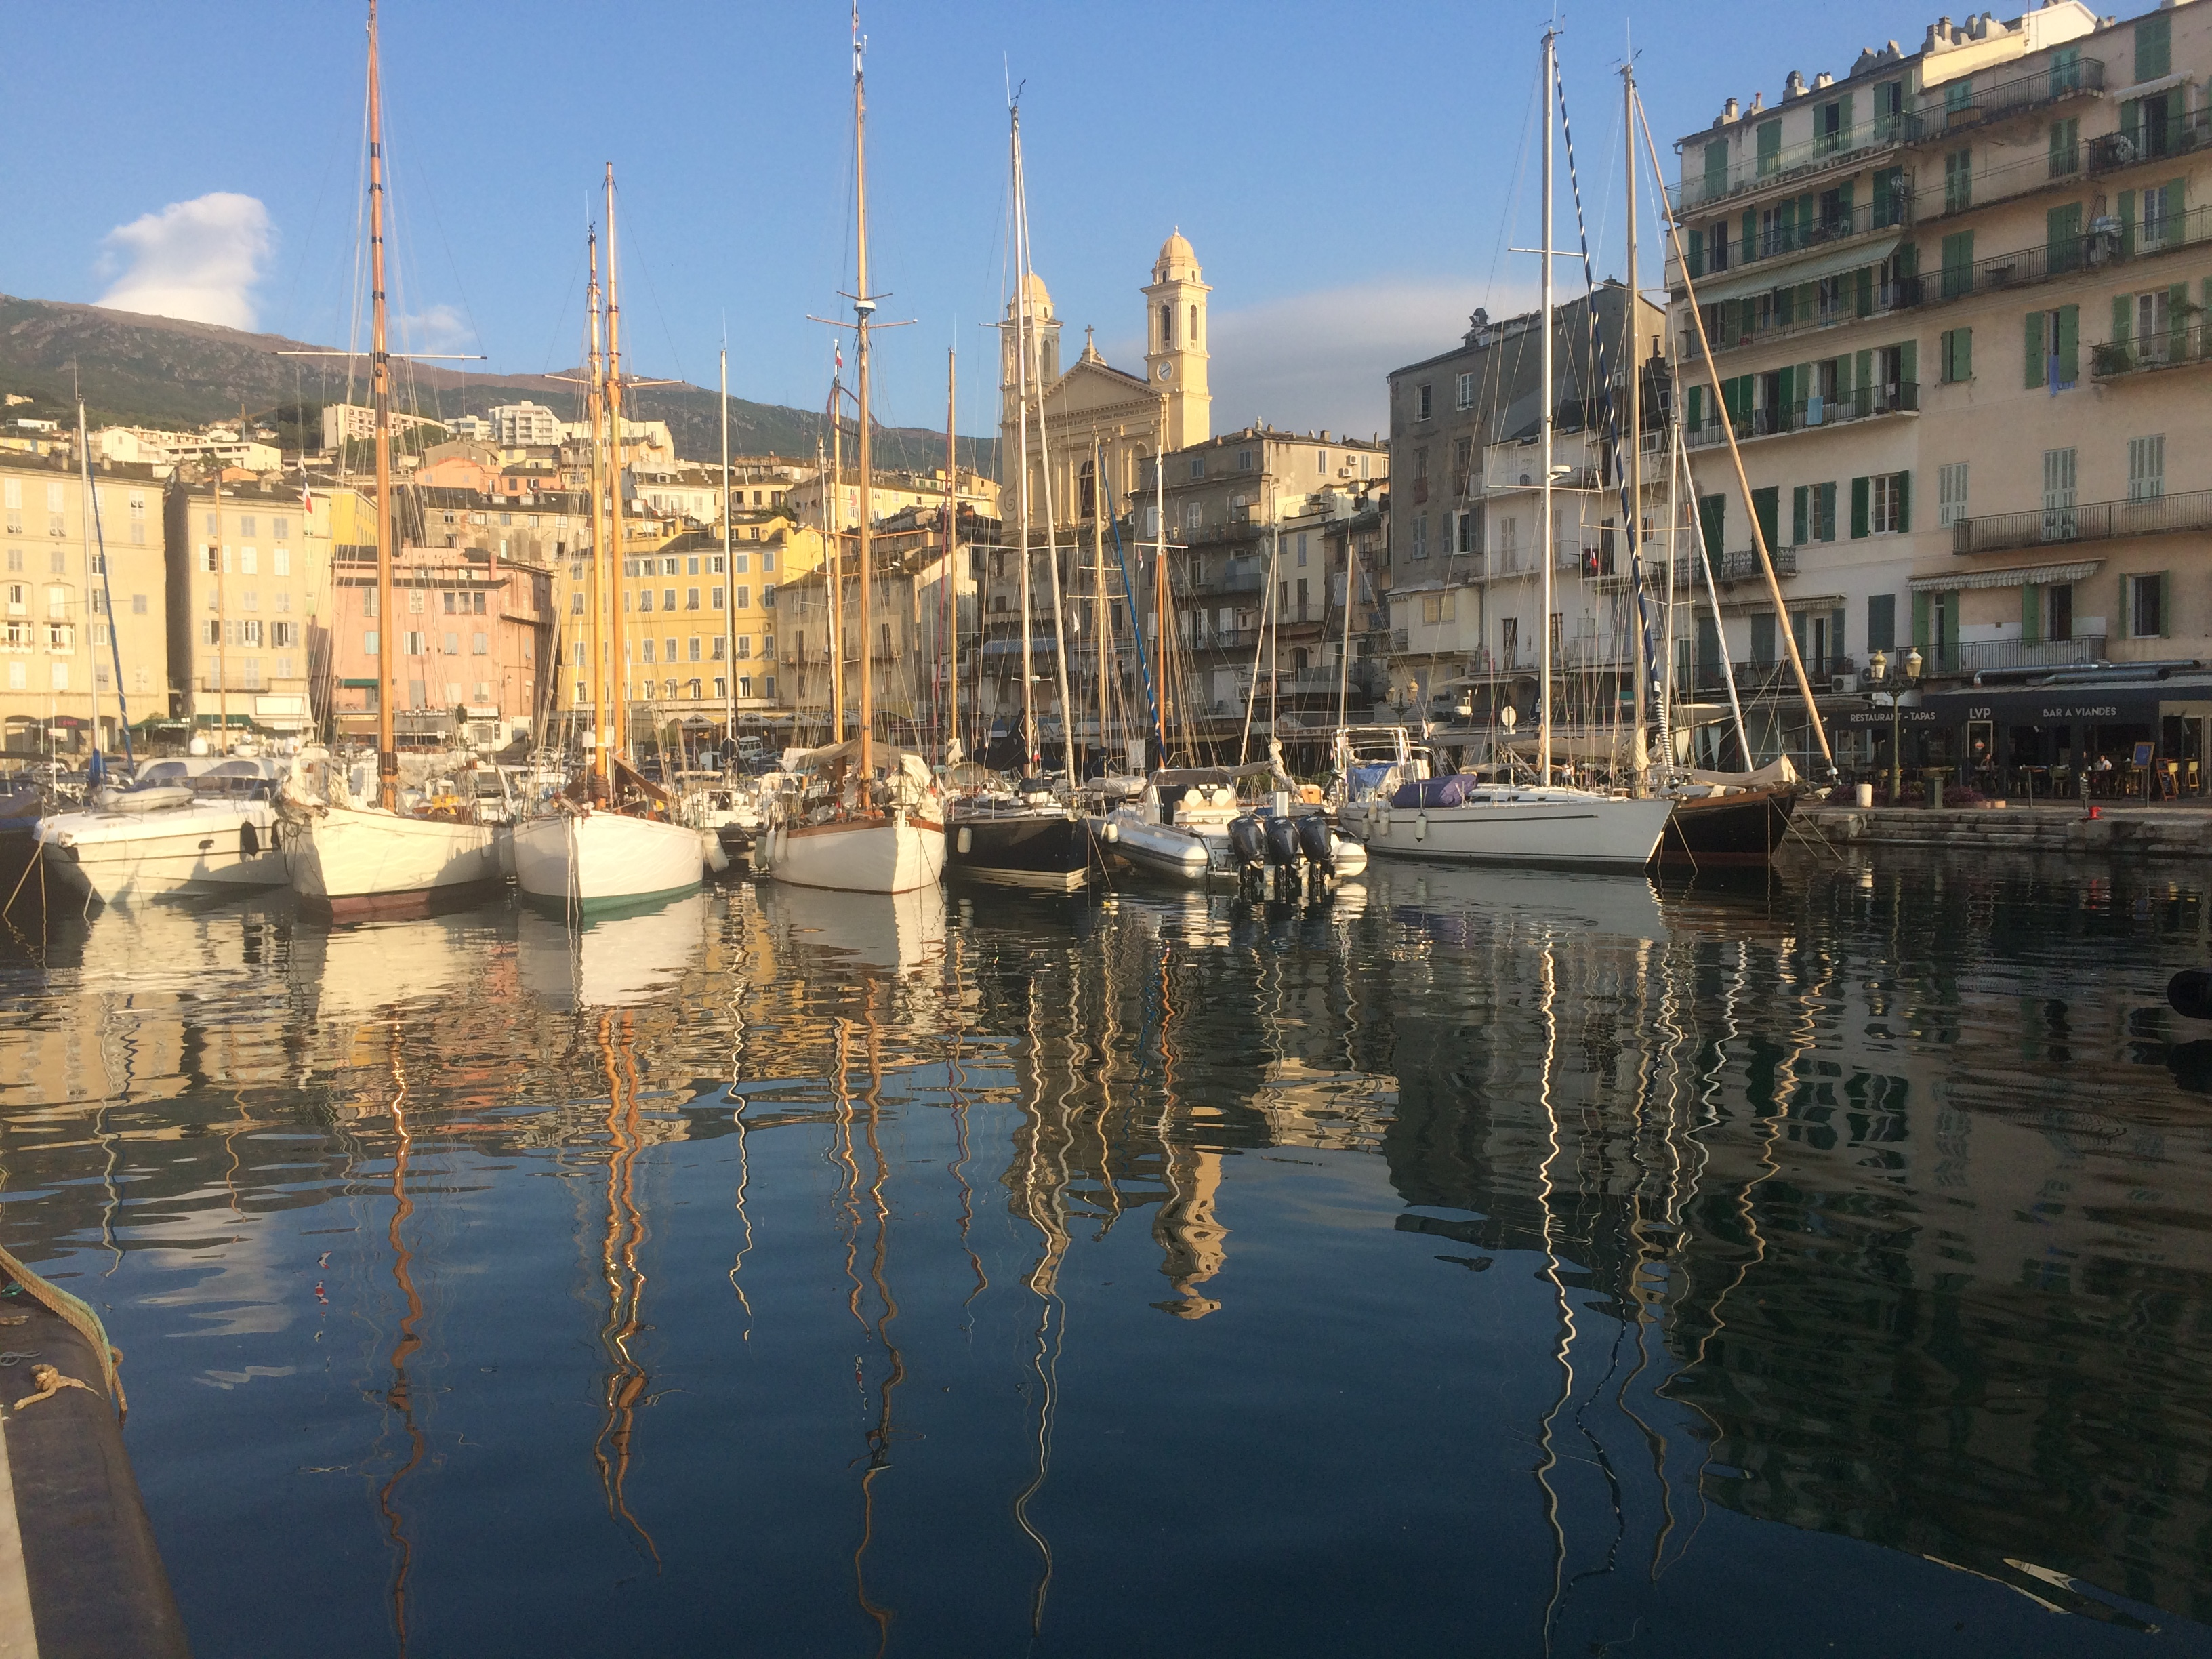 Bastia vieux port Photo Thibaud Assante